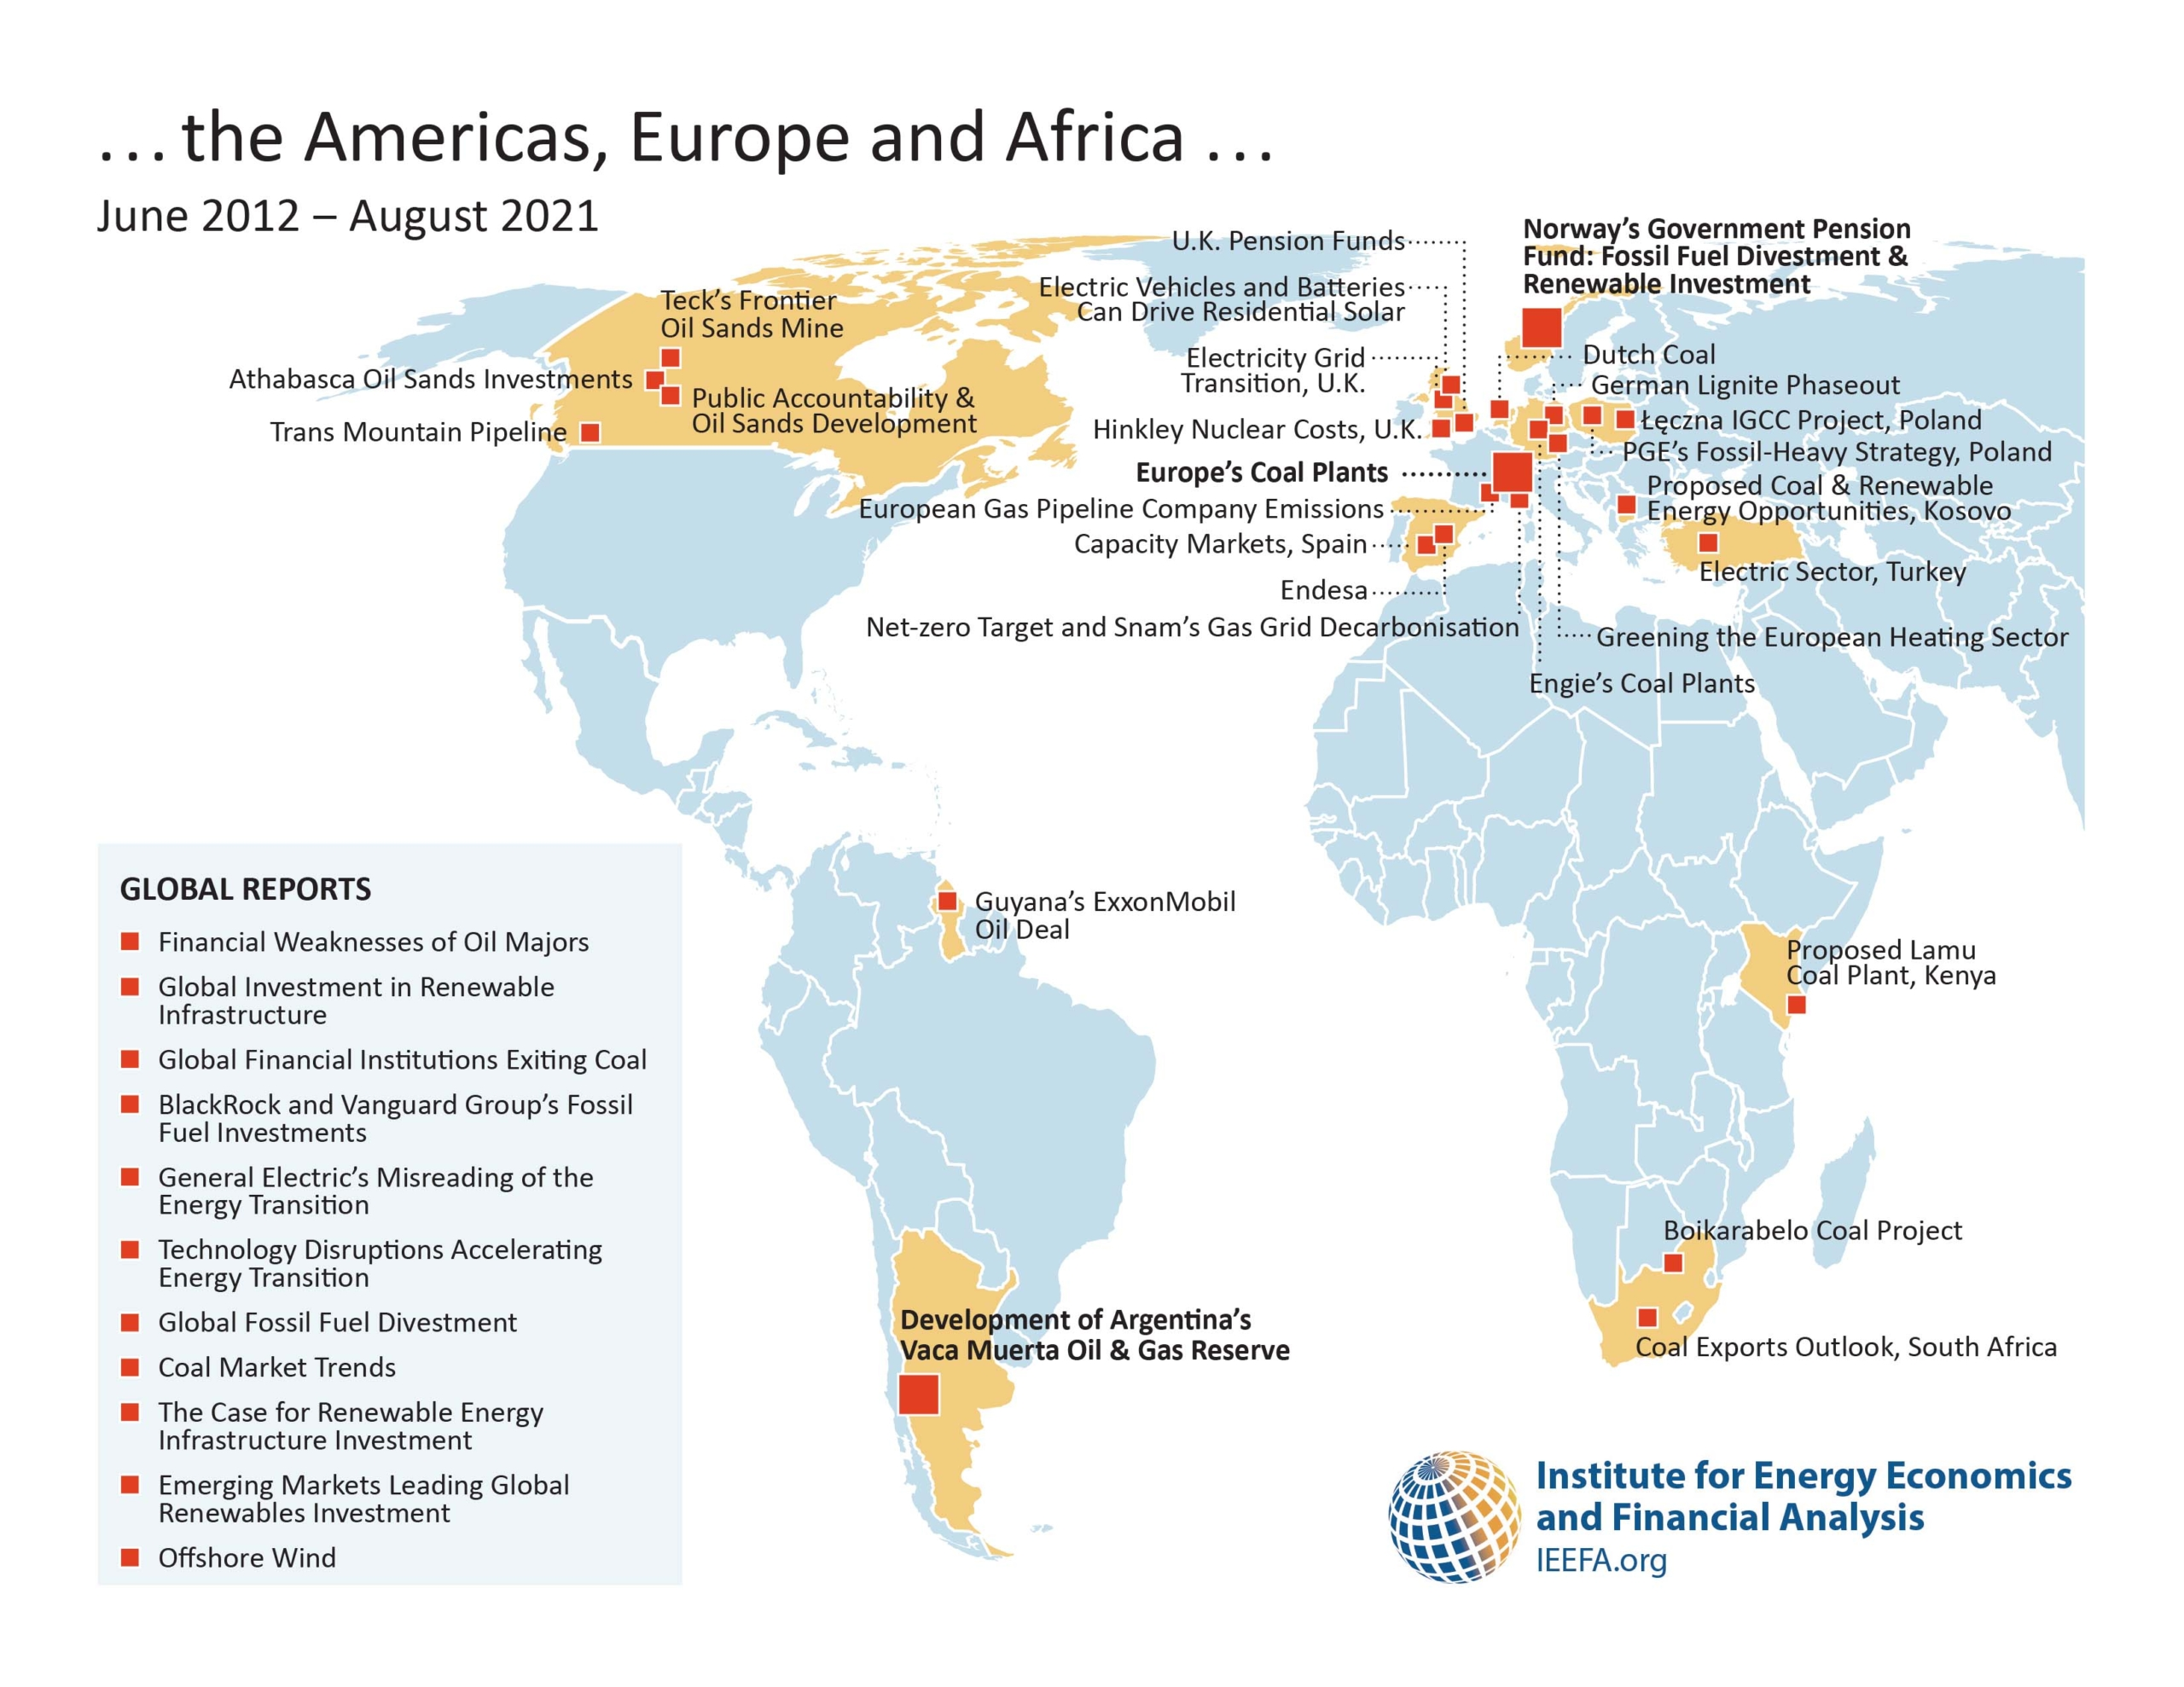 IEEFA Reports in Americas, Europe and Africa